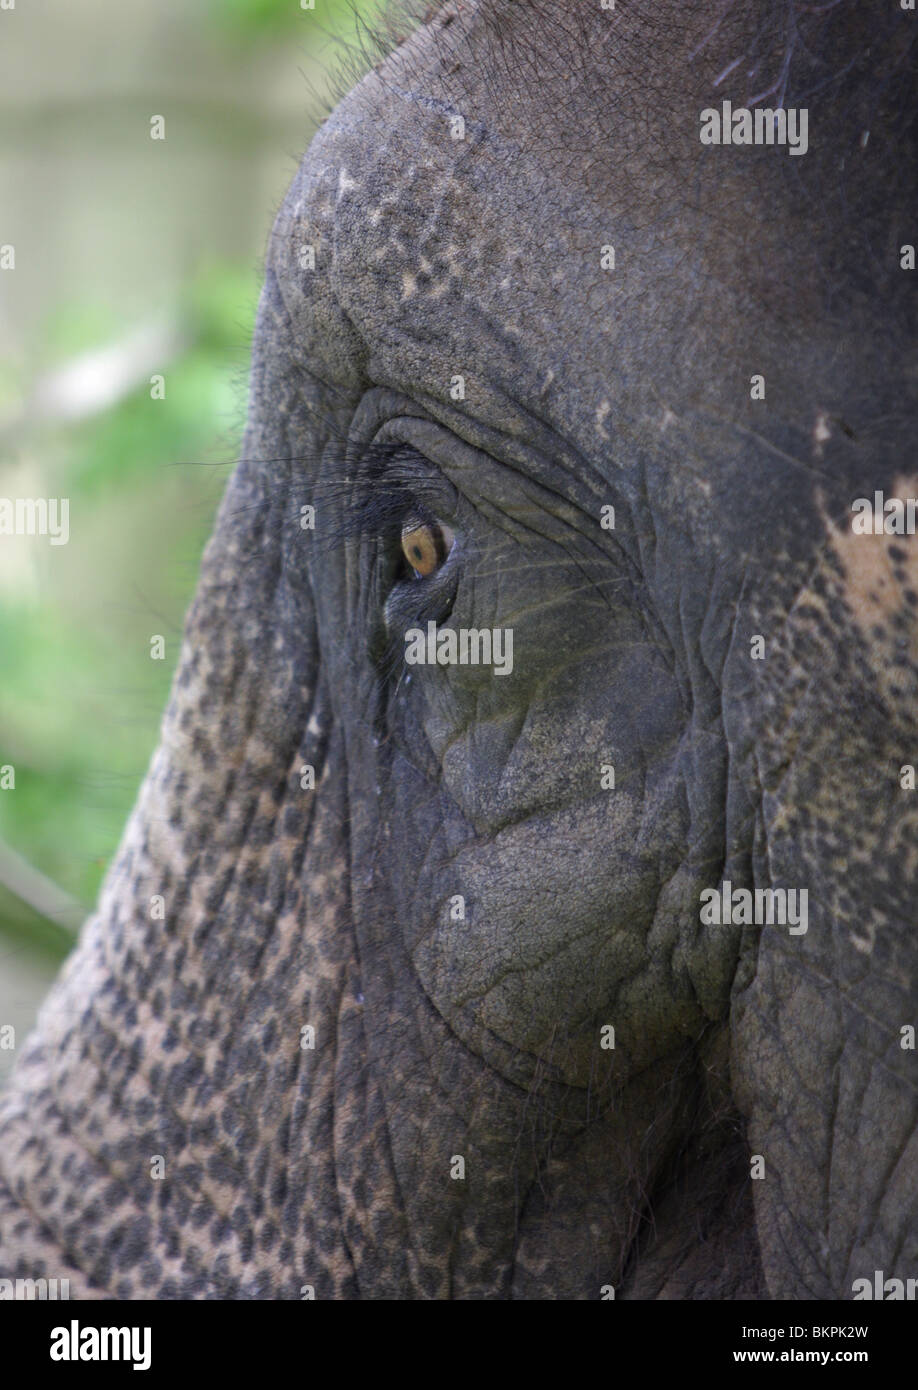 A close up of an Indian elephant. - Stock Image